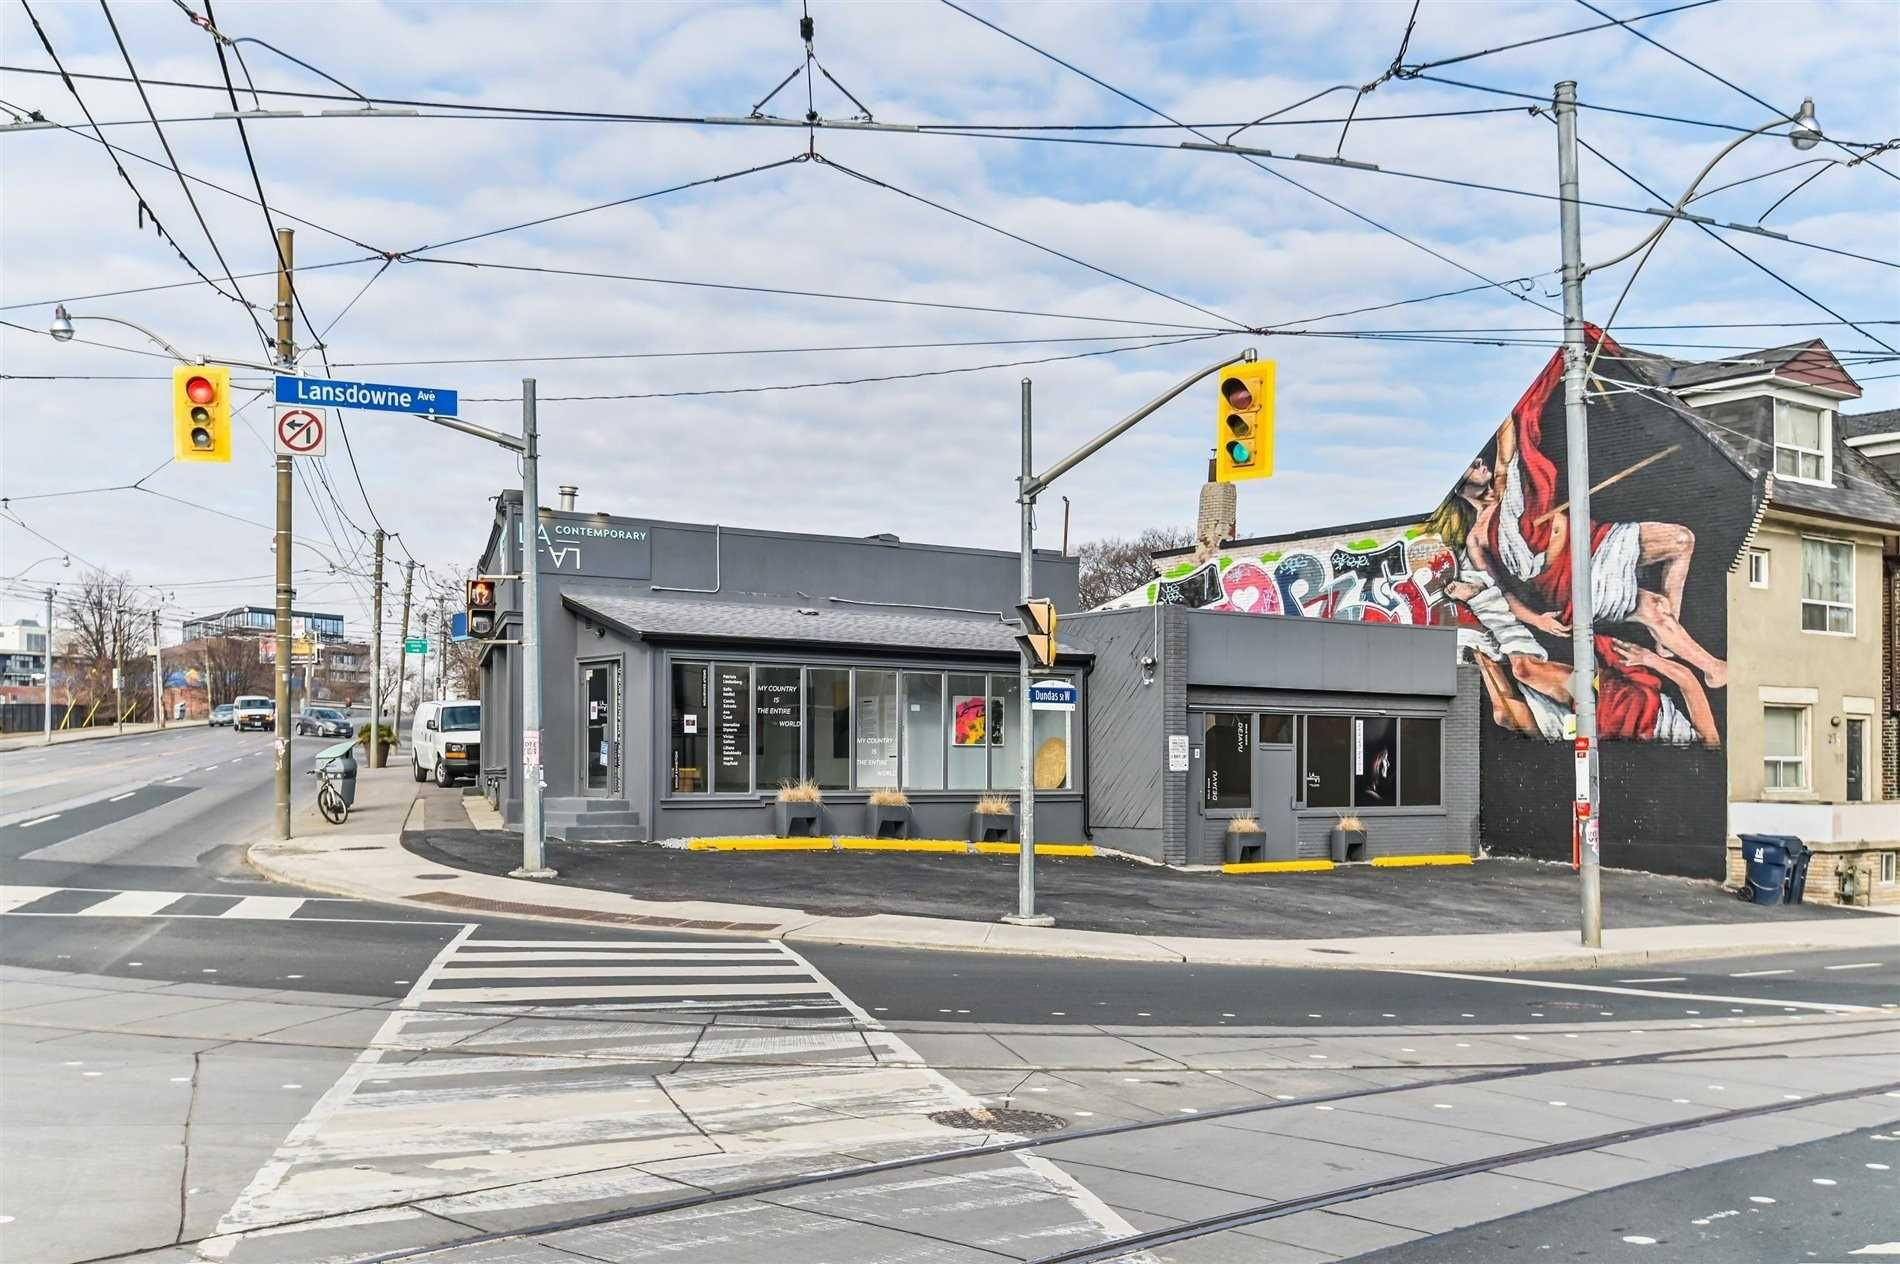 Main Photo: 1756 W Dundas Street in Toronto: Dufferin Grove Property for sale (Toronto C01)  : MLS®# C5155636